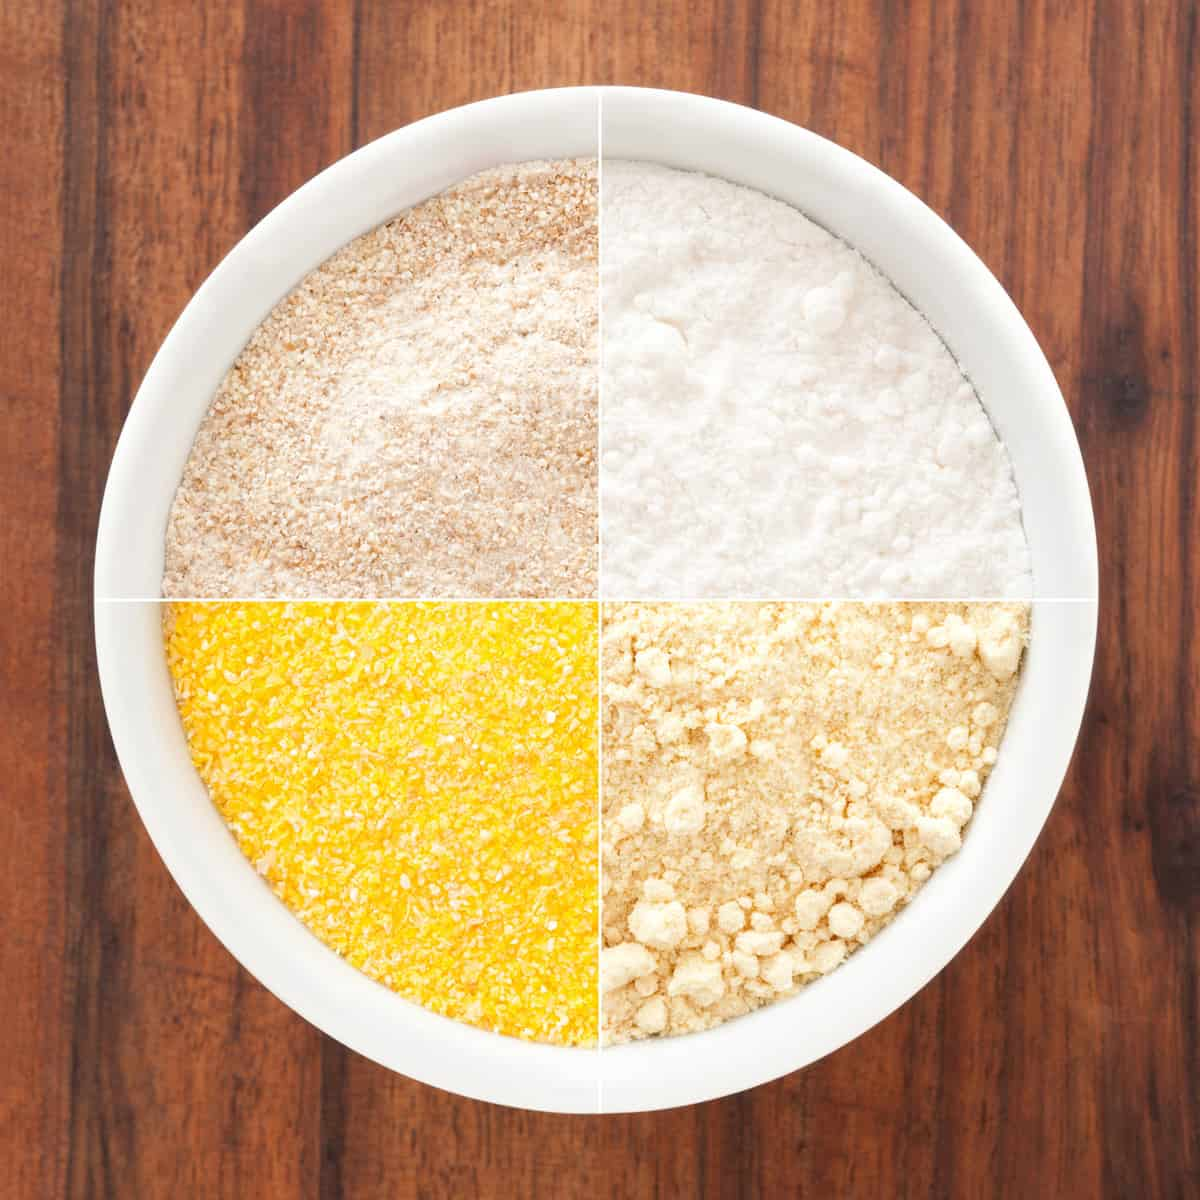 Composite of several shots of flours (wholemeal, regular, corn, soy) in white bowl for variation concept